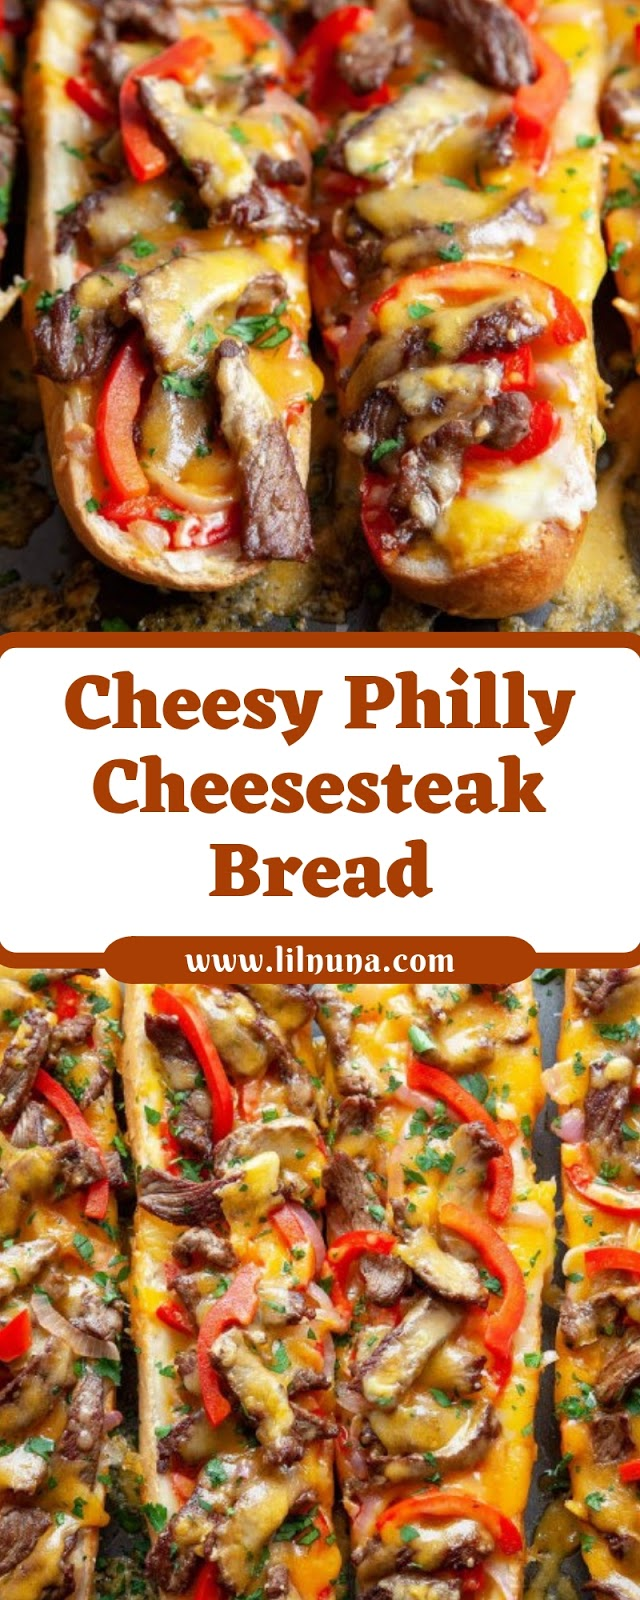 Cheesy Philly Cheesesteak Bread